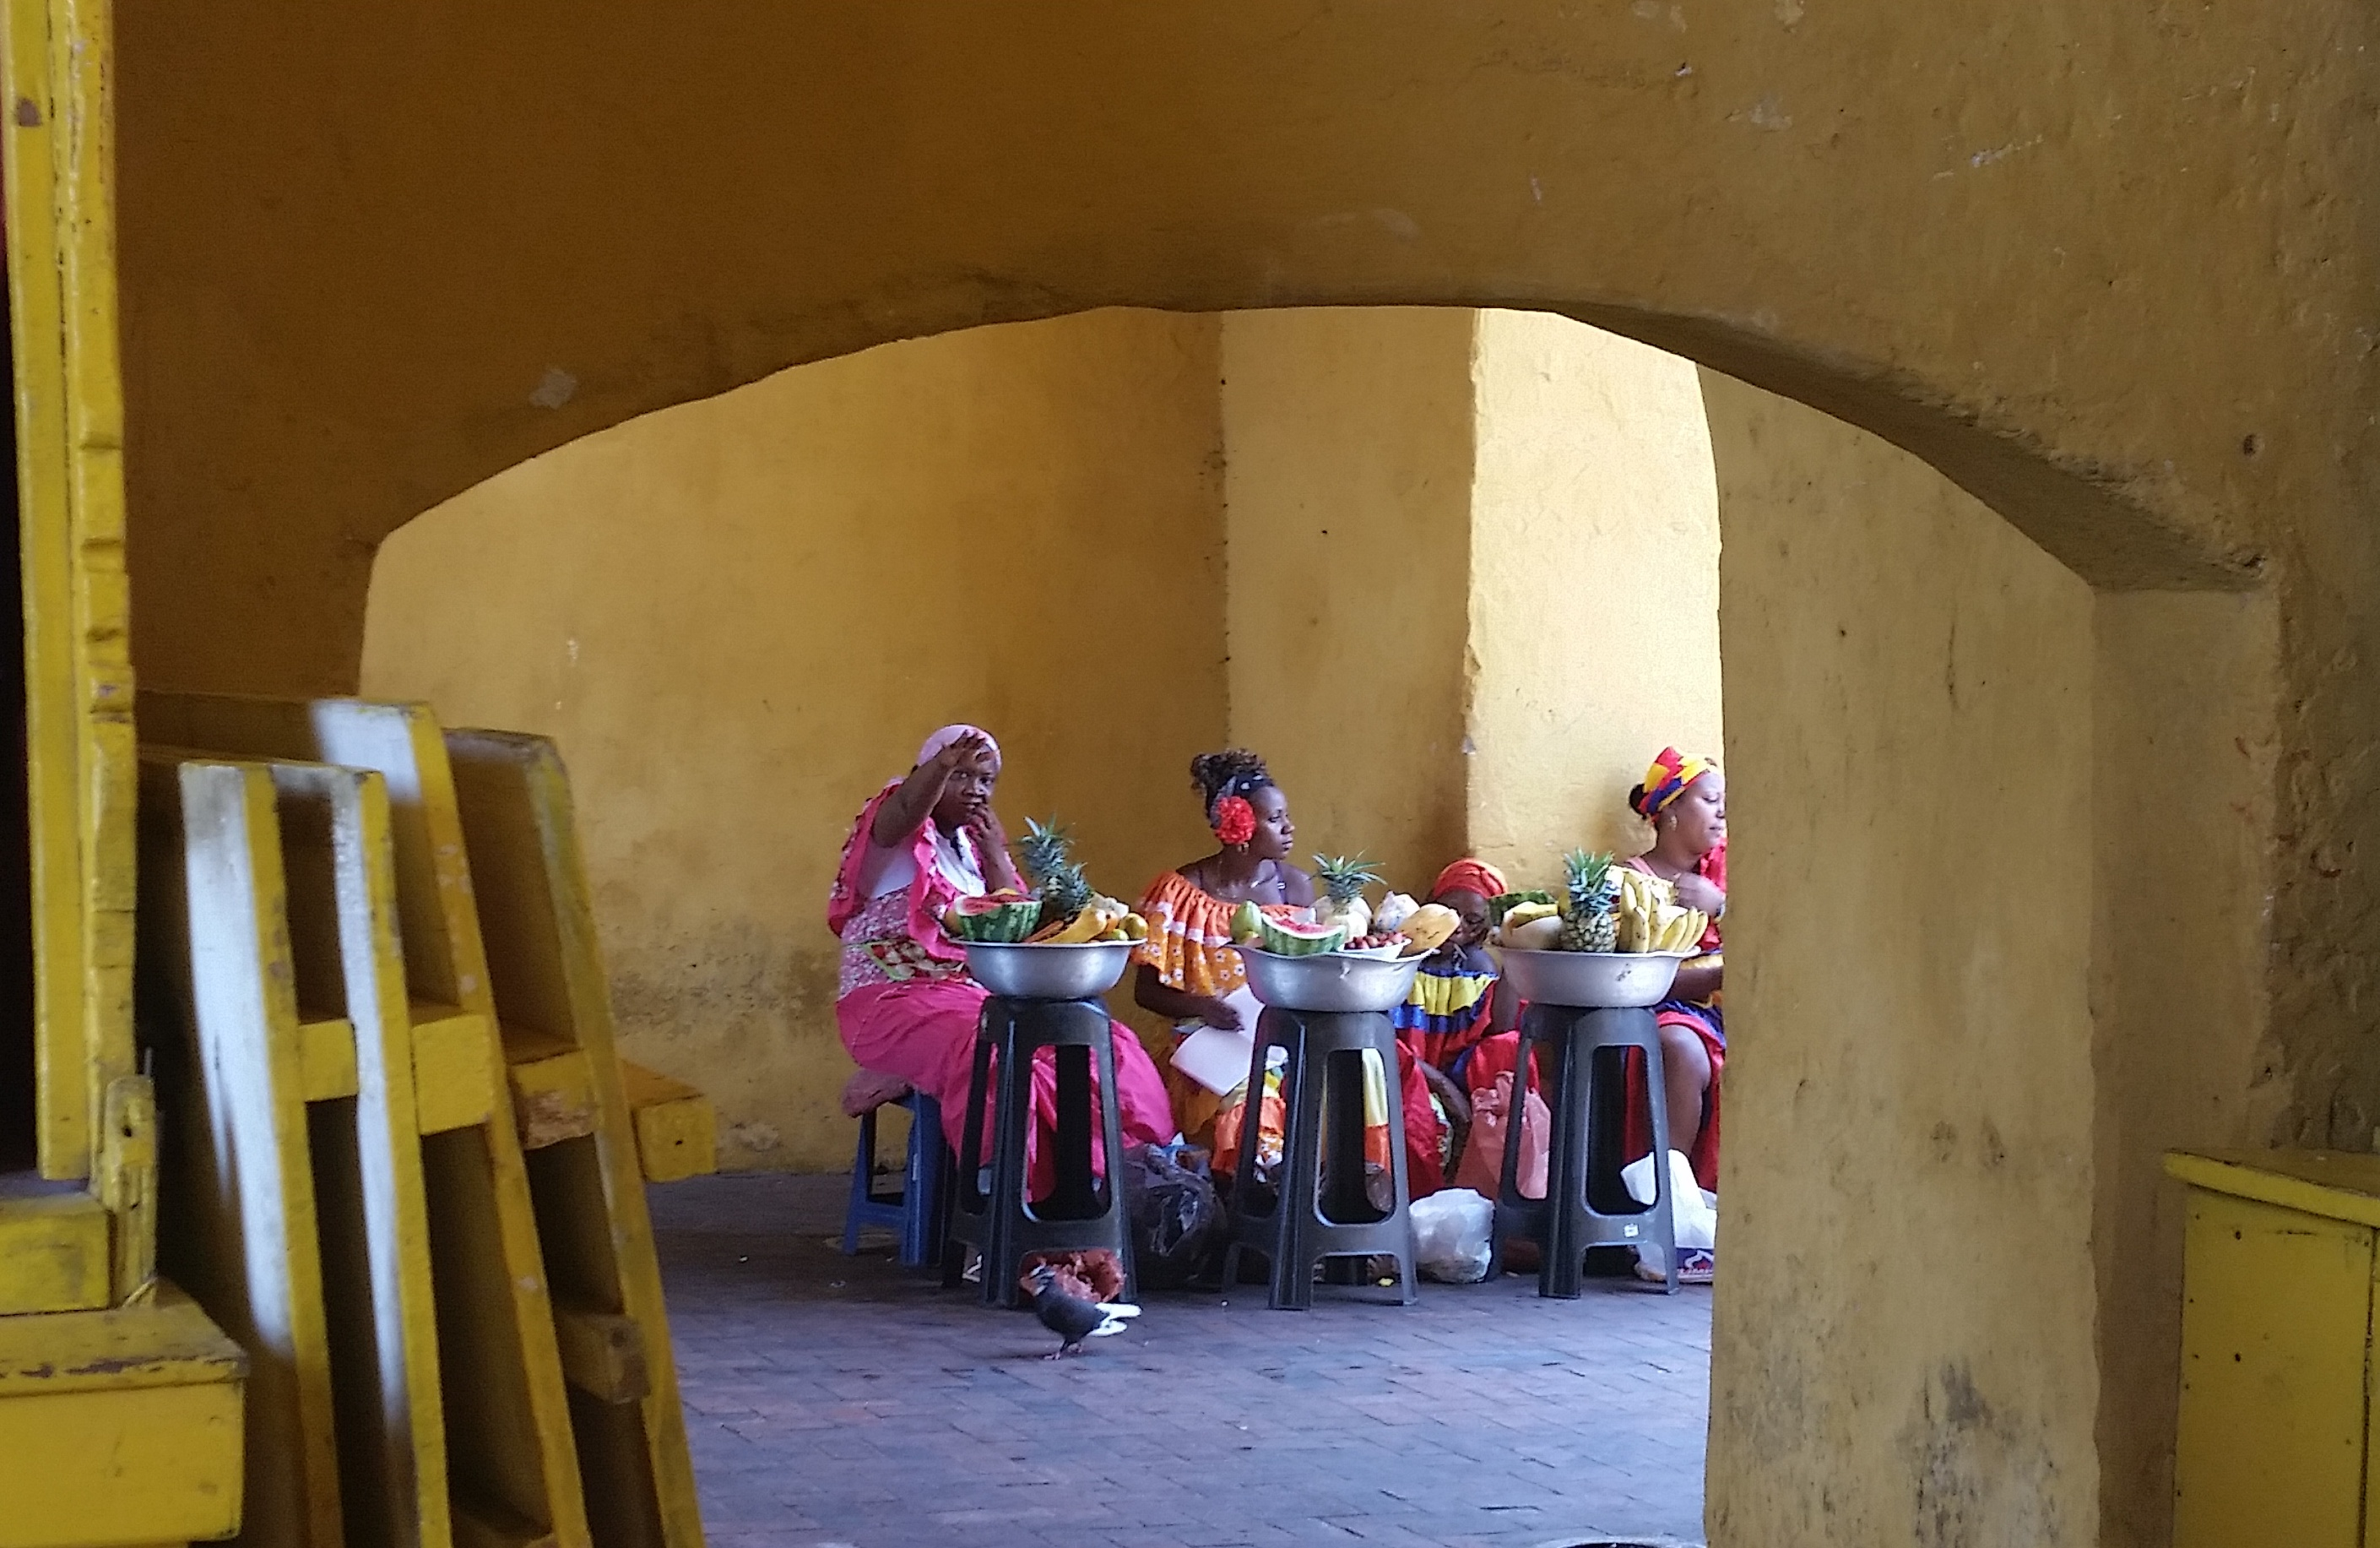 Female vendors in Cartagena